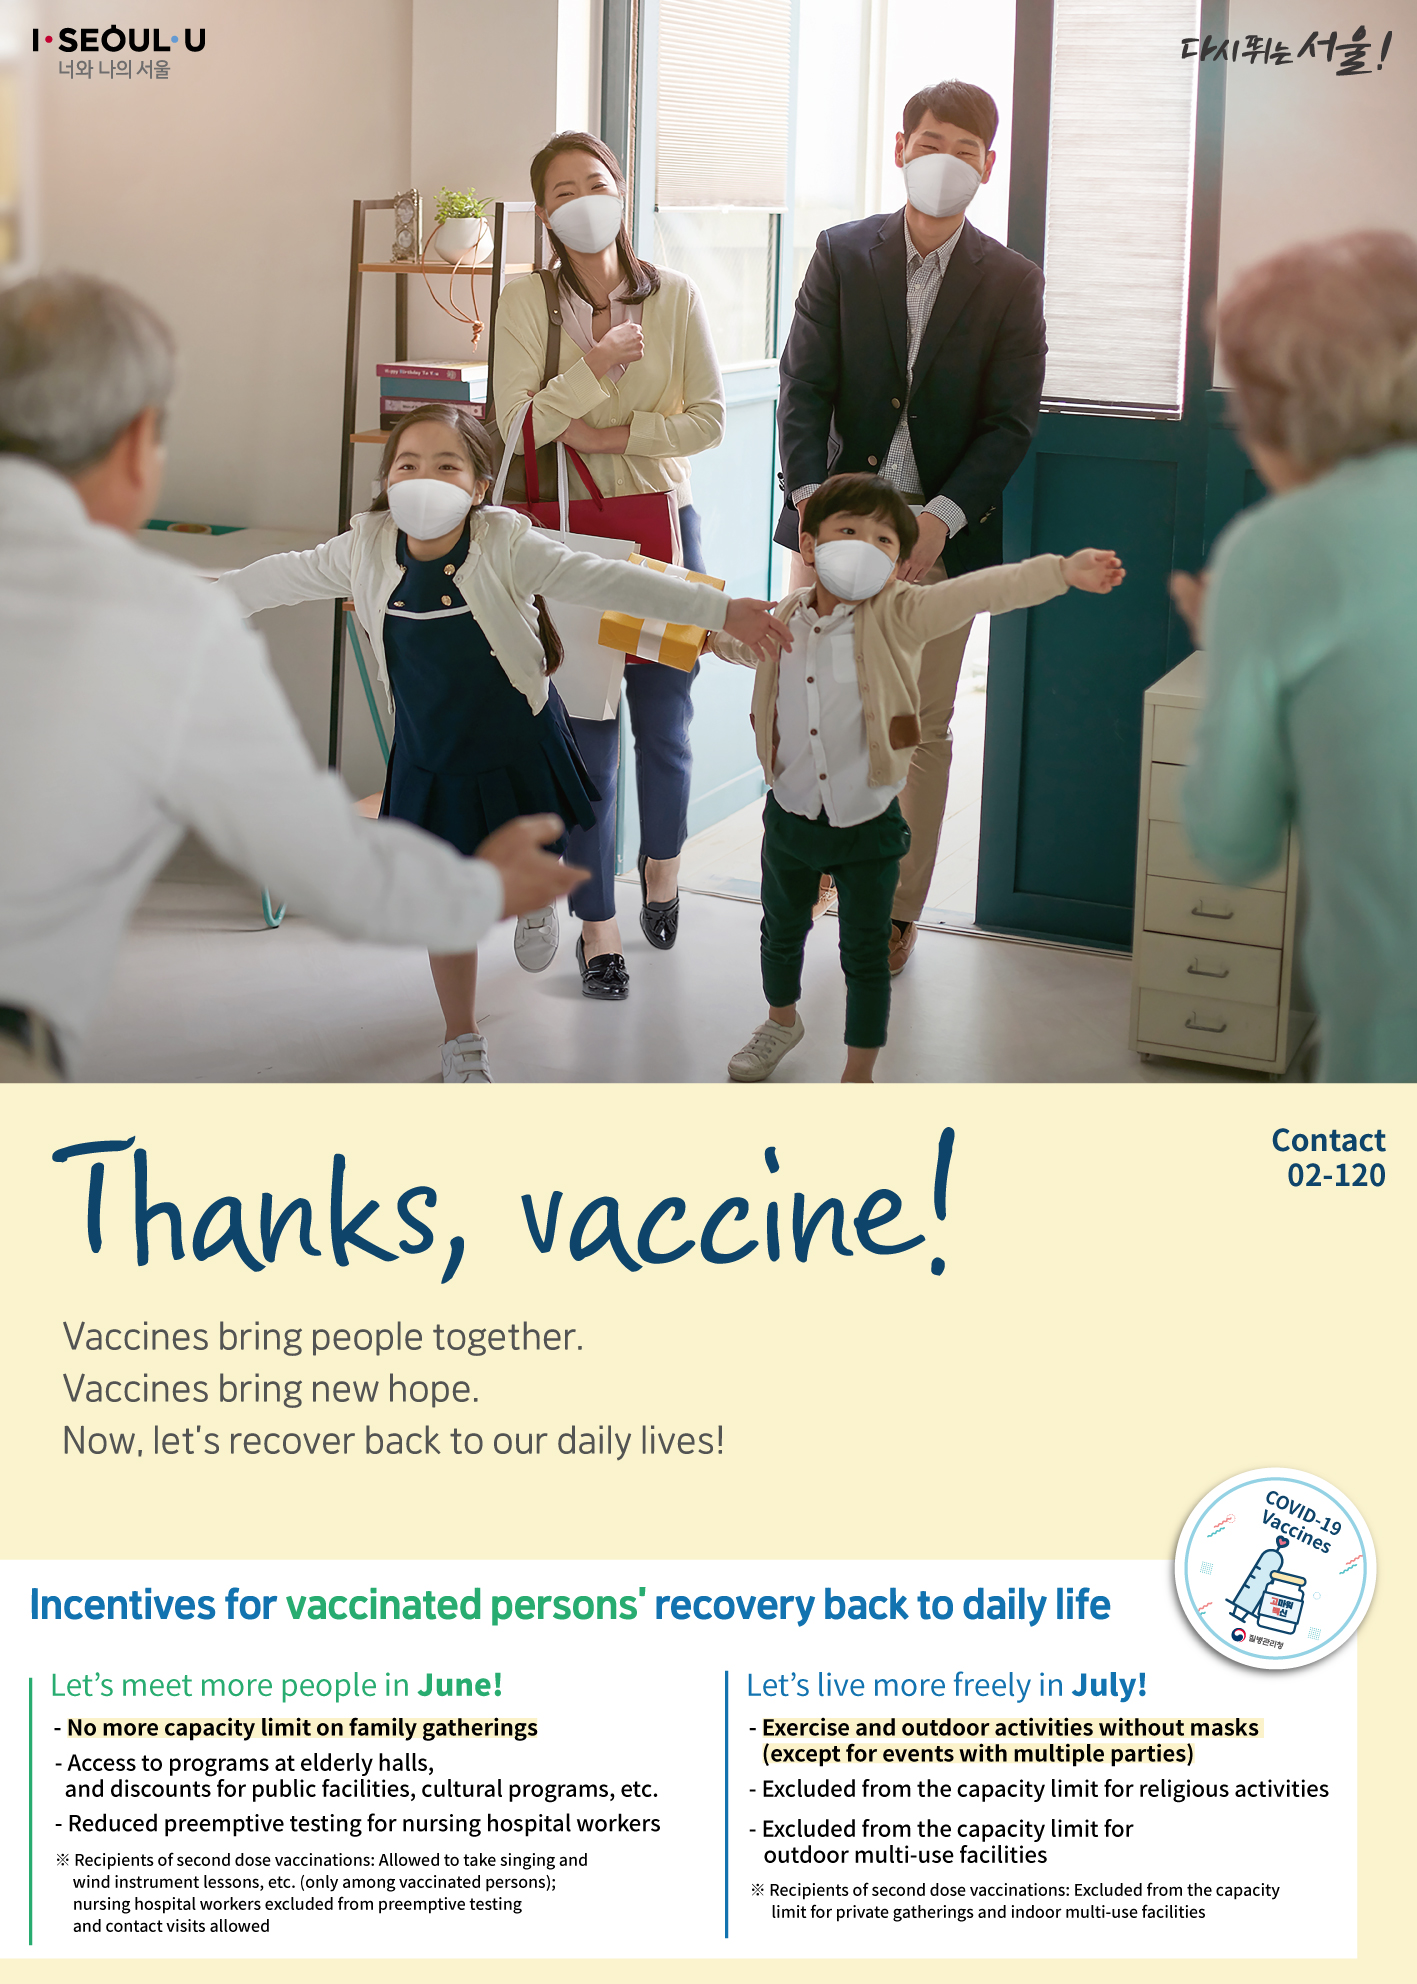 Thanks, vaccine! Vaccines bring people together. Vaccines bring new hope. Now, let's recover back to our daily lives! Incentives for vaccinated persons' recovery back to daily life Let's meet more people in June! - No more capacity limit on family gatherings - Access to programs at elderly halls, and discounts for public facilities, cultural programs, etc. - Reduced preemptive testing for nursing hospital workers ※ Recipients of second dose vaccinations: Allowed to take singing and wind instrument lessons, etc. (only among vaccinated persons); nursing hospital workers excluded from preemptive testing and contact visits allowed Let's live more freely in July! - Exercise and outdoor activities without masks (except for events with multiple parties)- Excluded from the capacity limit for religious activities - Excluded from the capacity limit for outdoor multi-use facilities ※ Recipients of second dose vaccinations: Excluded from the capacity limit for private gatherings and indoor multi-use facilities